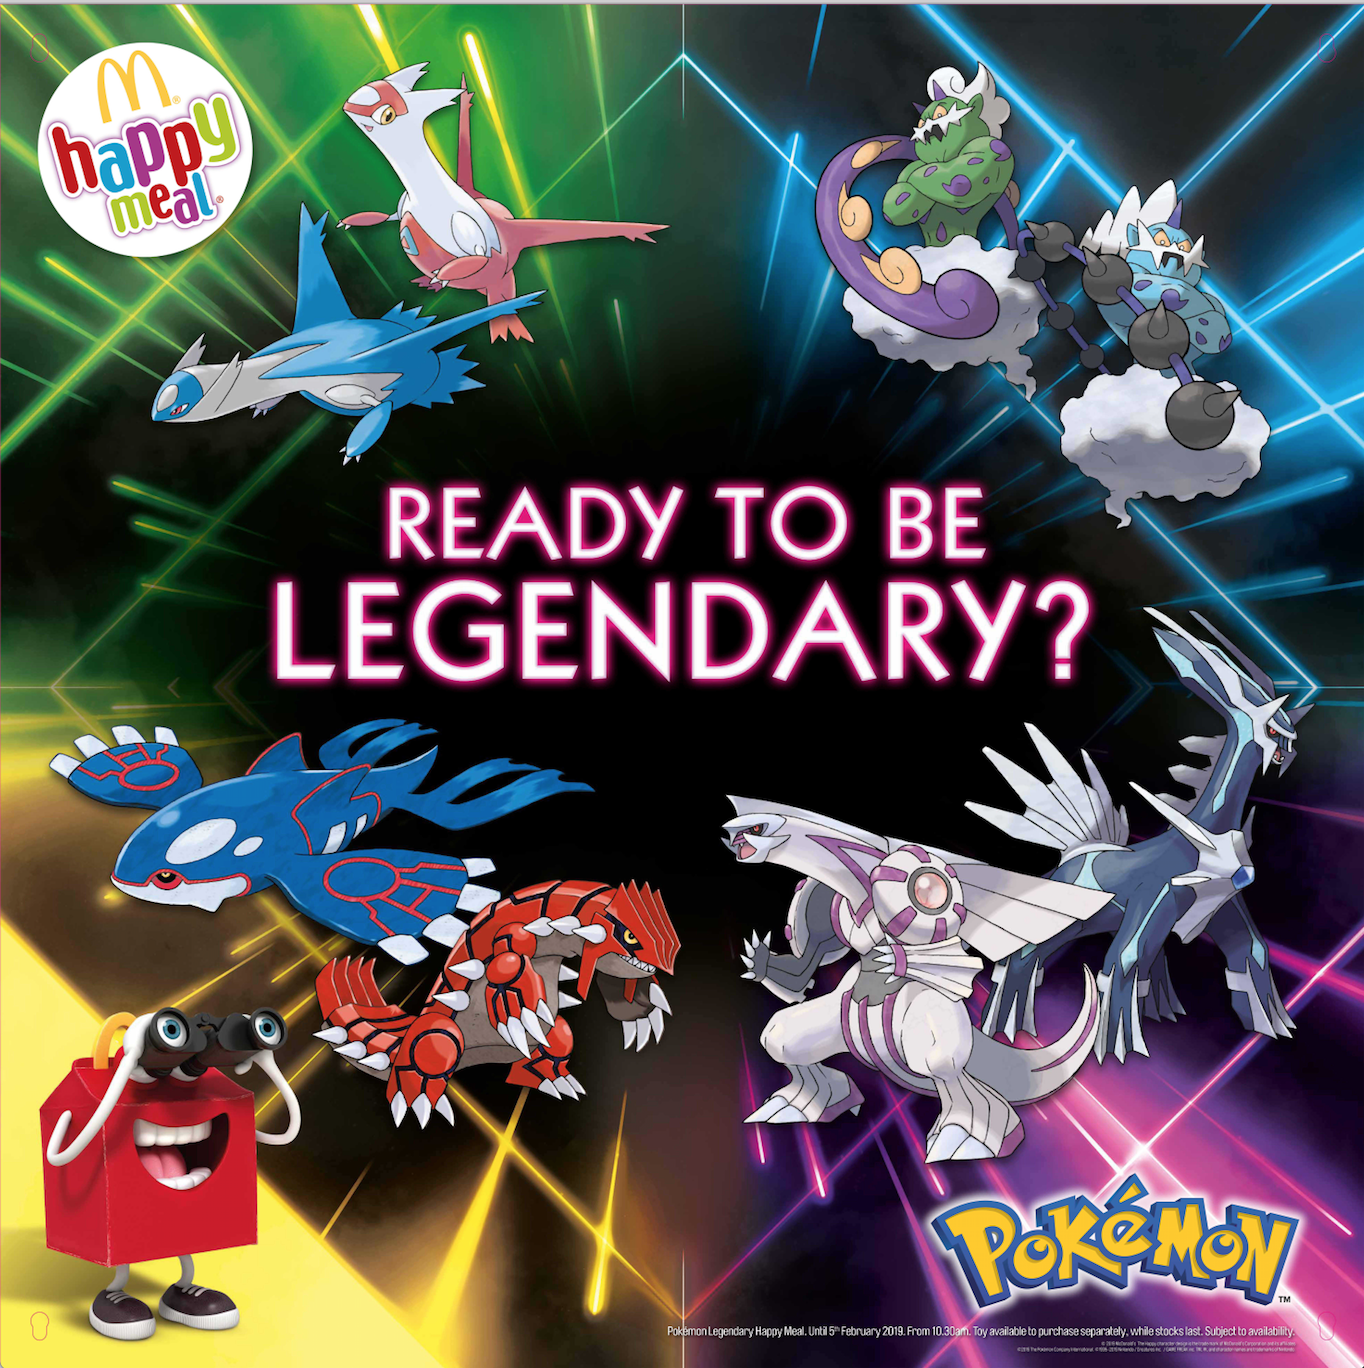 Click to see the Legendary Pokémon campaign